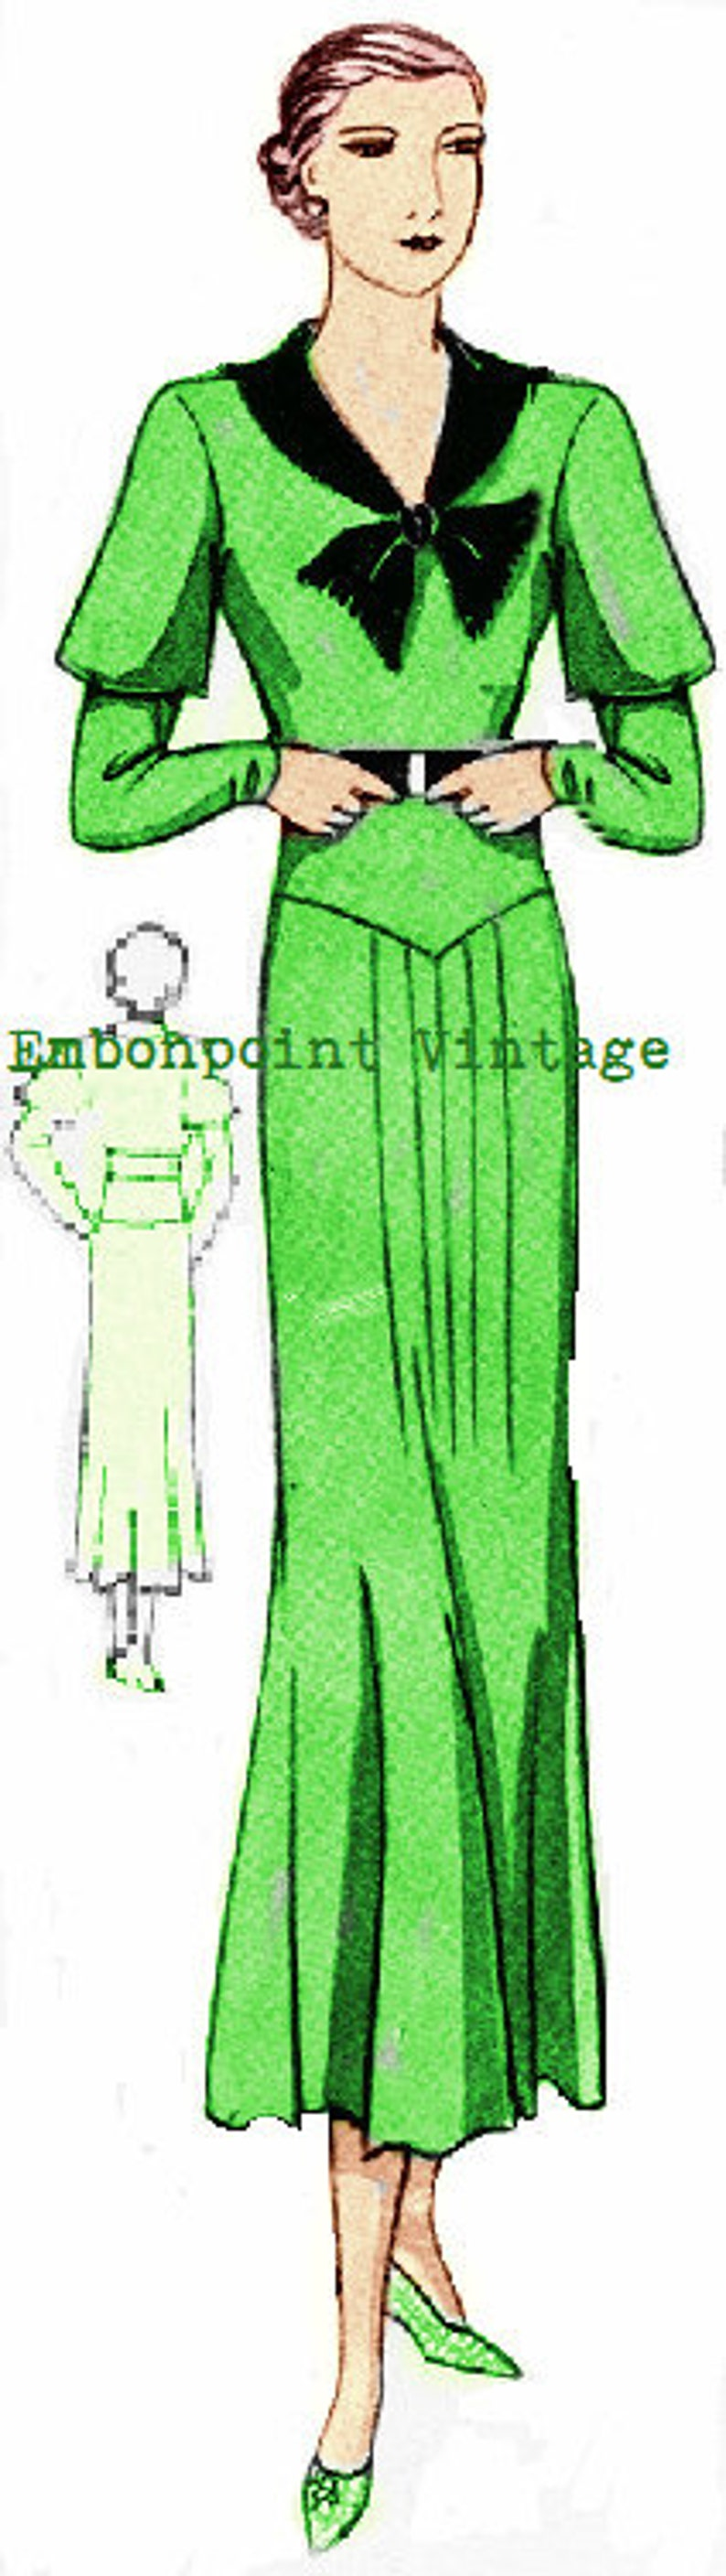 1930s Sewing Patterns- Dresses, Pants, Tops Plus Size (or any size) 1934 Vintage Dress Sewing Pattern - PDF - Pattern No 62 Dorothea 1930s 30s Instant Download $8.35 AT vintagedancer.com